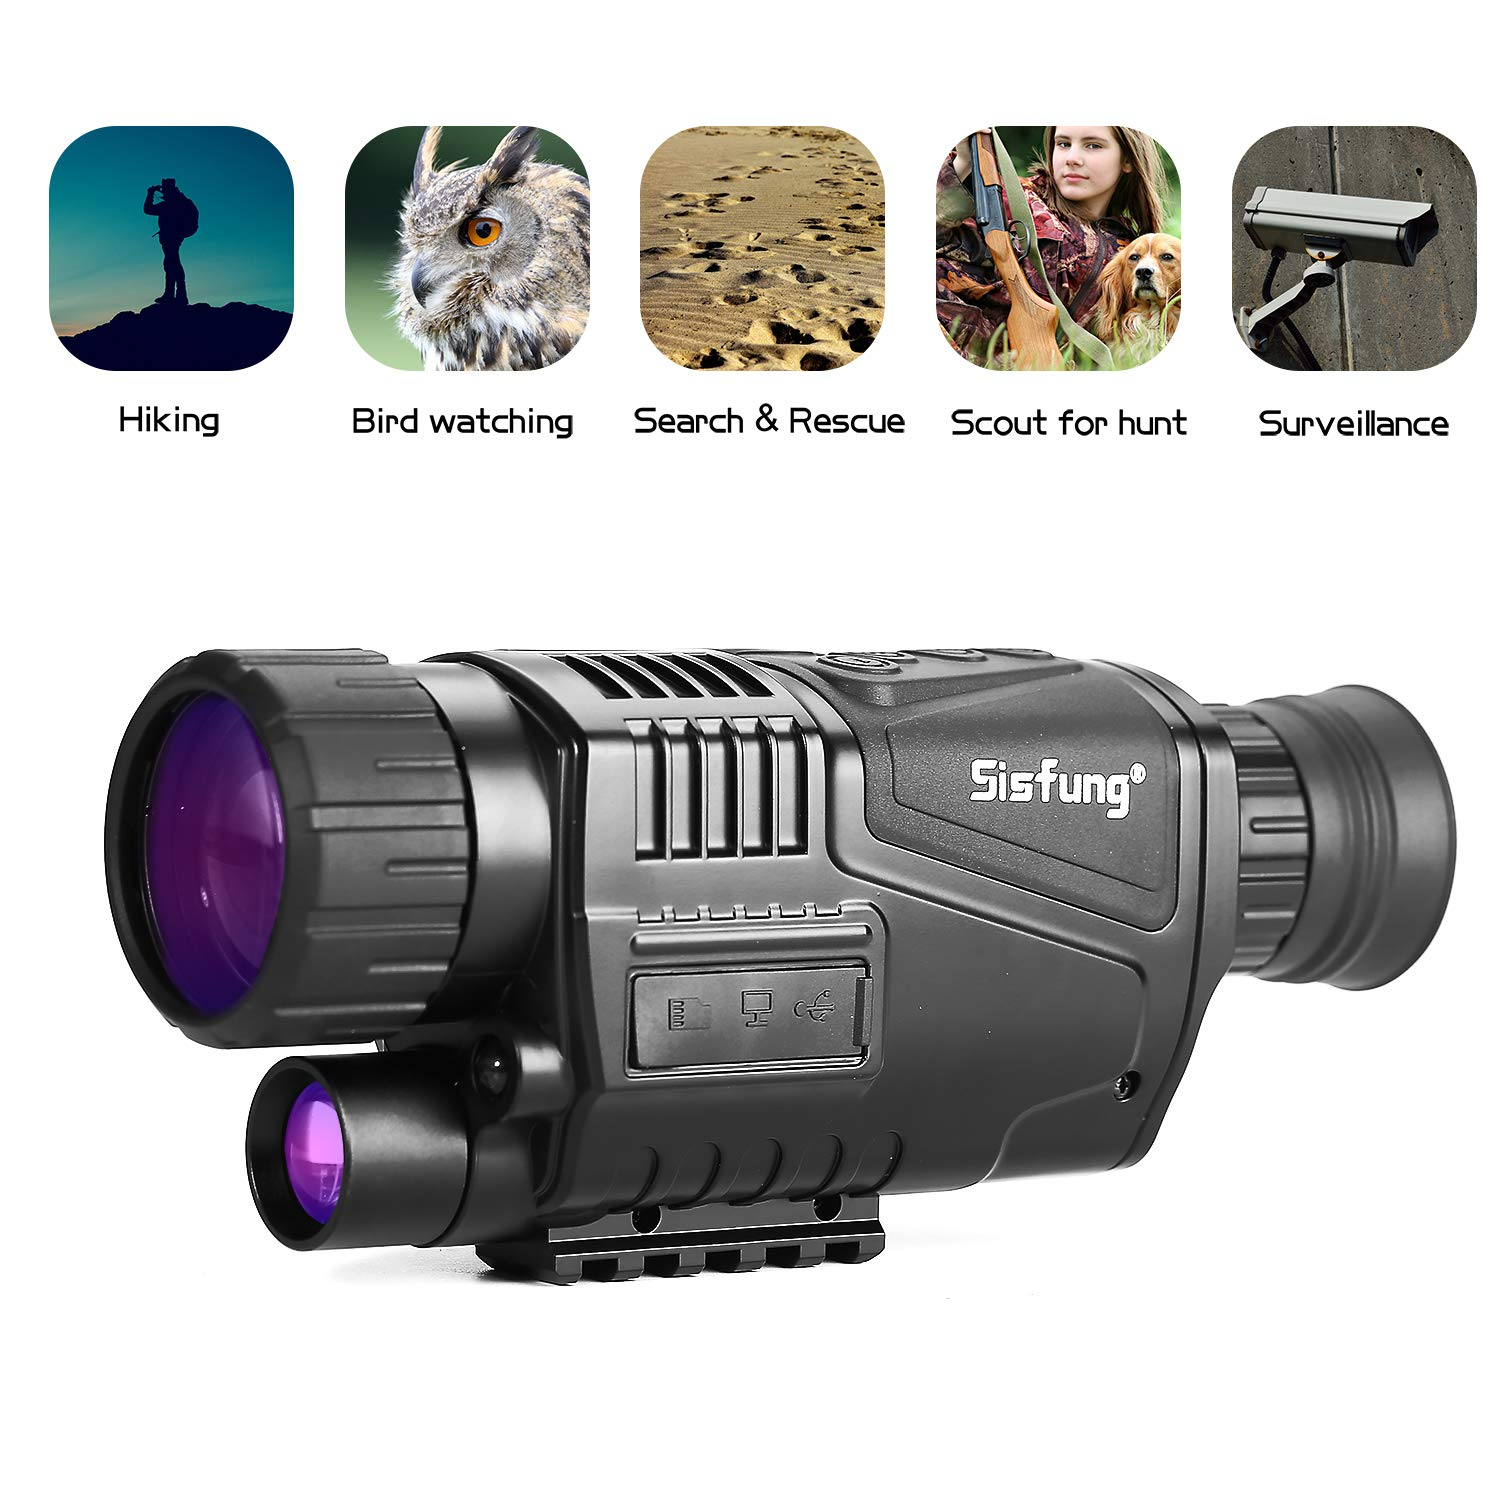 Sisfung Night Vision Monocular (Included 16GB TF Card), 5x40mm HD Night Vision Monocular Take Photos and Videos (Tags Time/Date) Up to 656ft in Full Darkness. by Sisfung